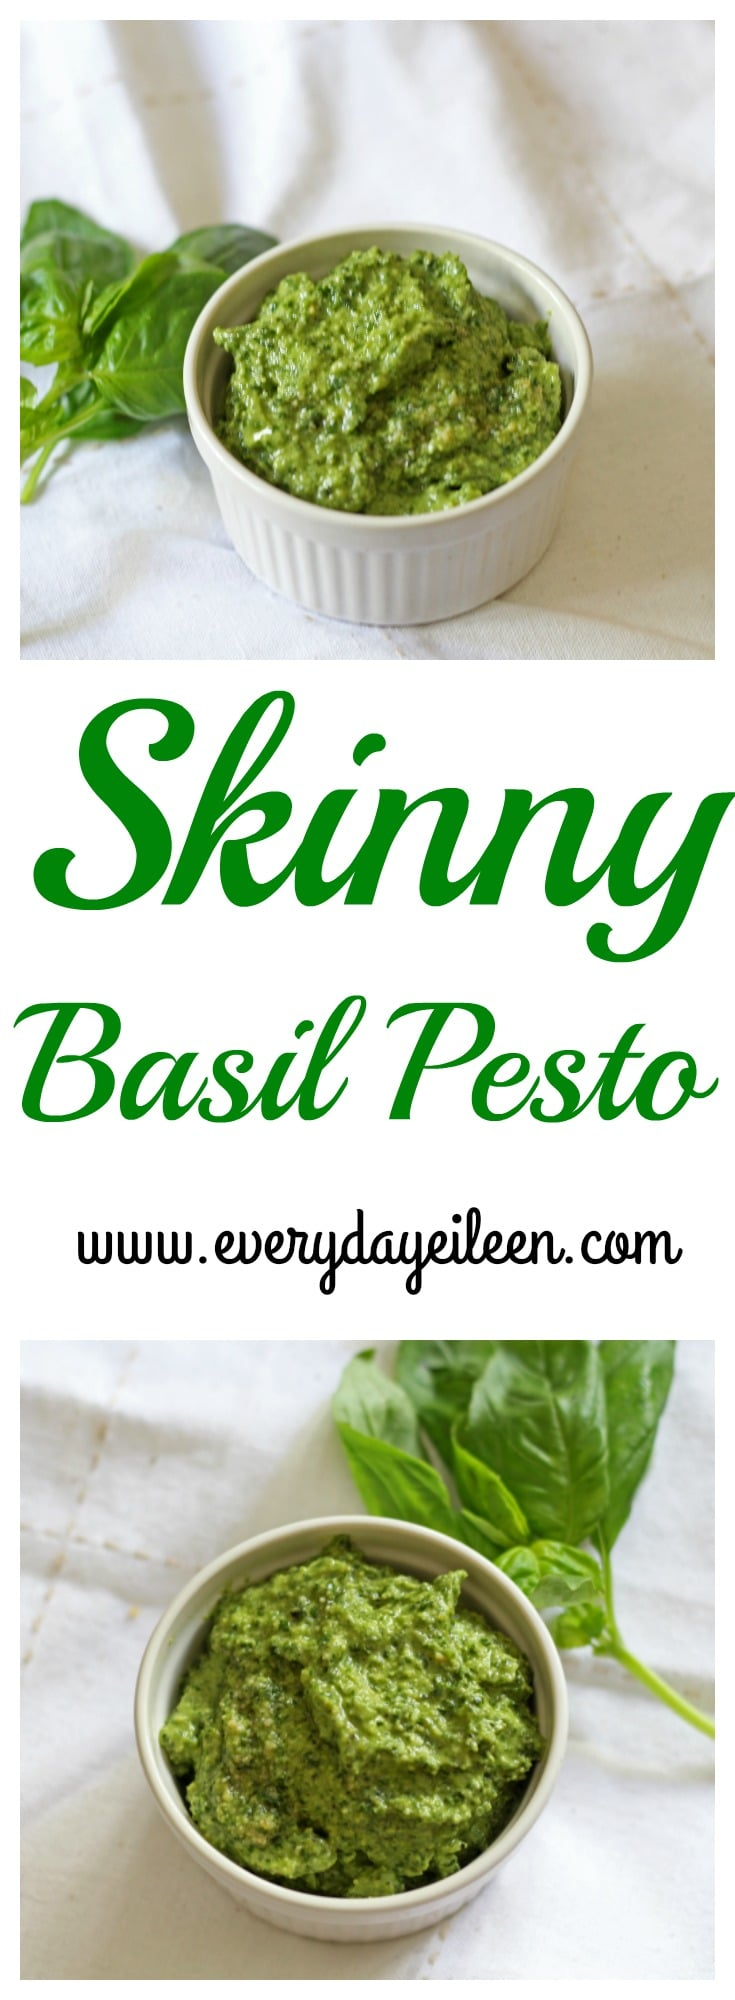 Skinny Basil Pesto - Everyday Eileen